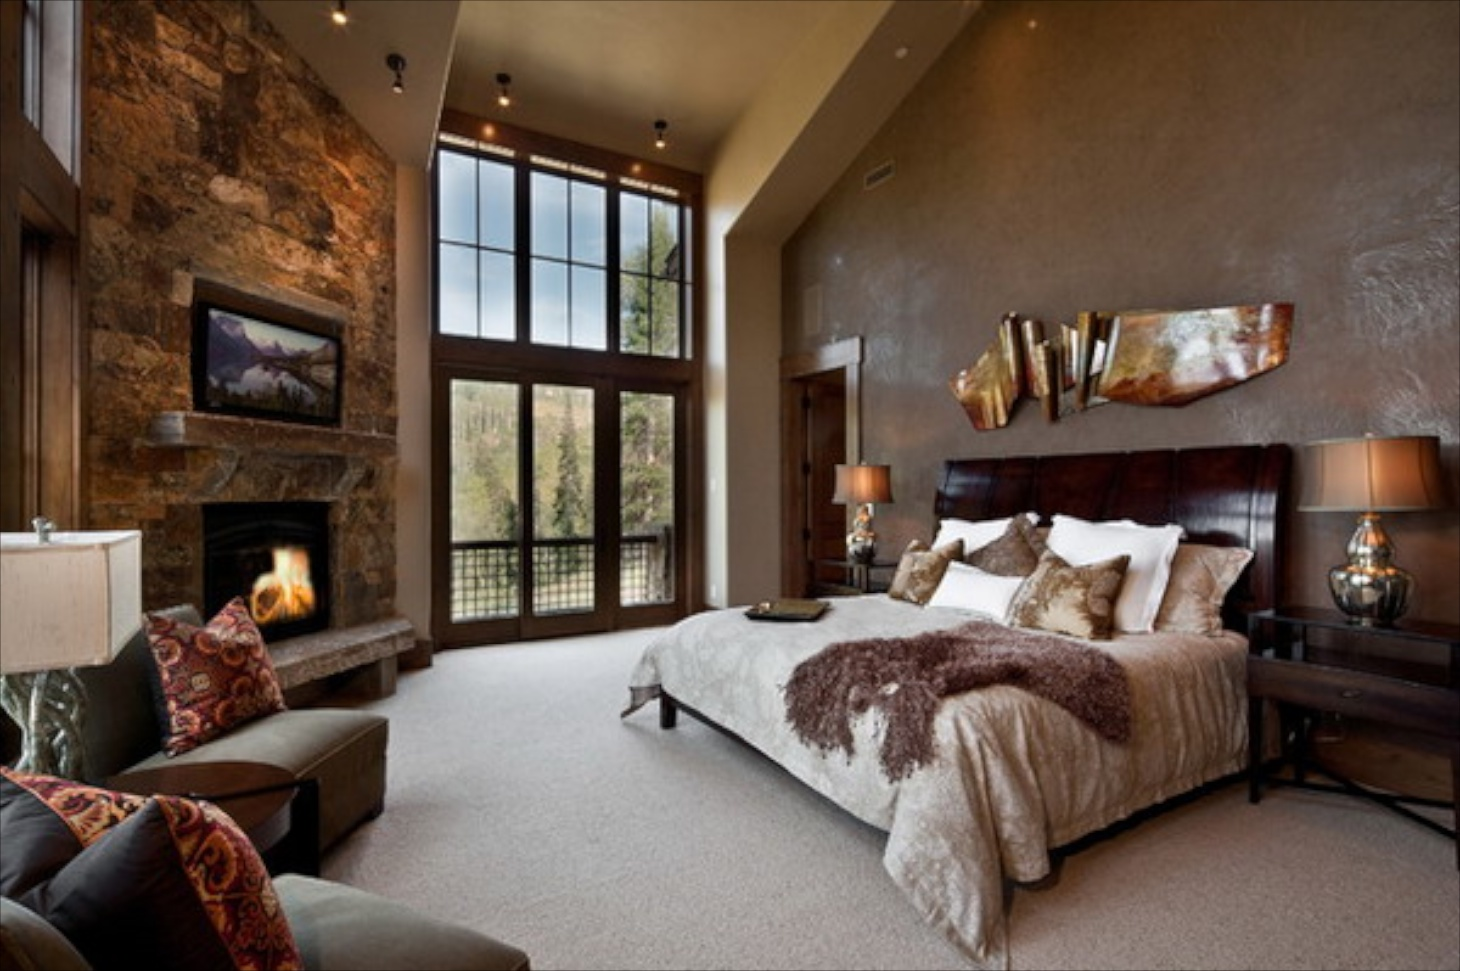 Bedroom stone fireplace - Bedroom Stone Fireplace 2